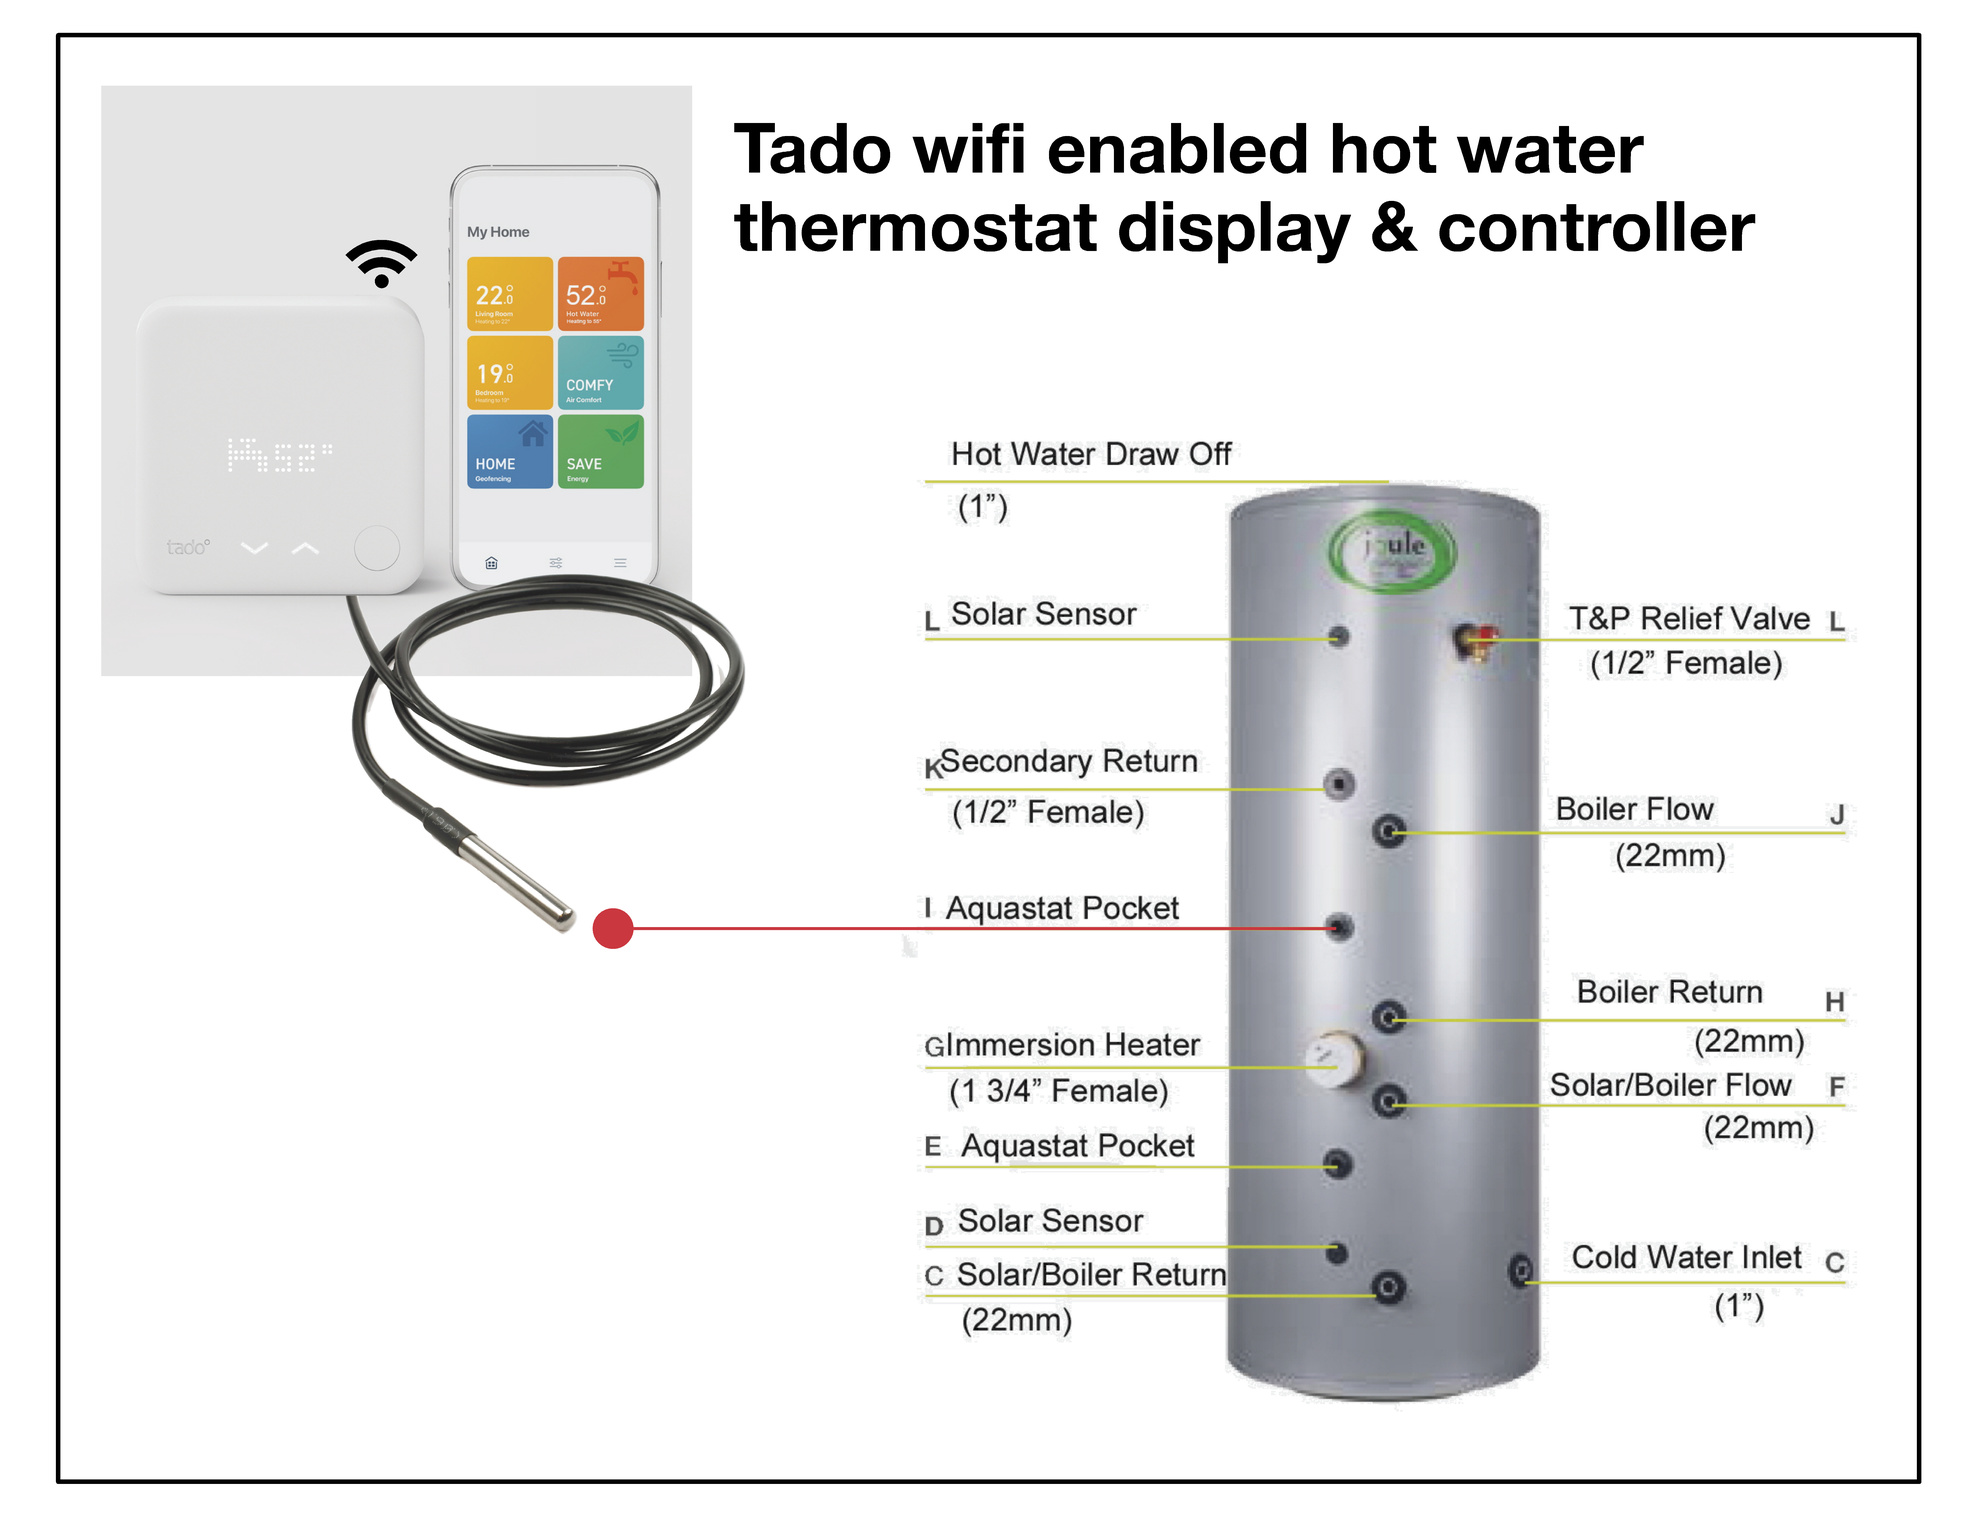 Tado Wifi Hot Water Display & Controler.JPG